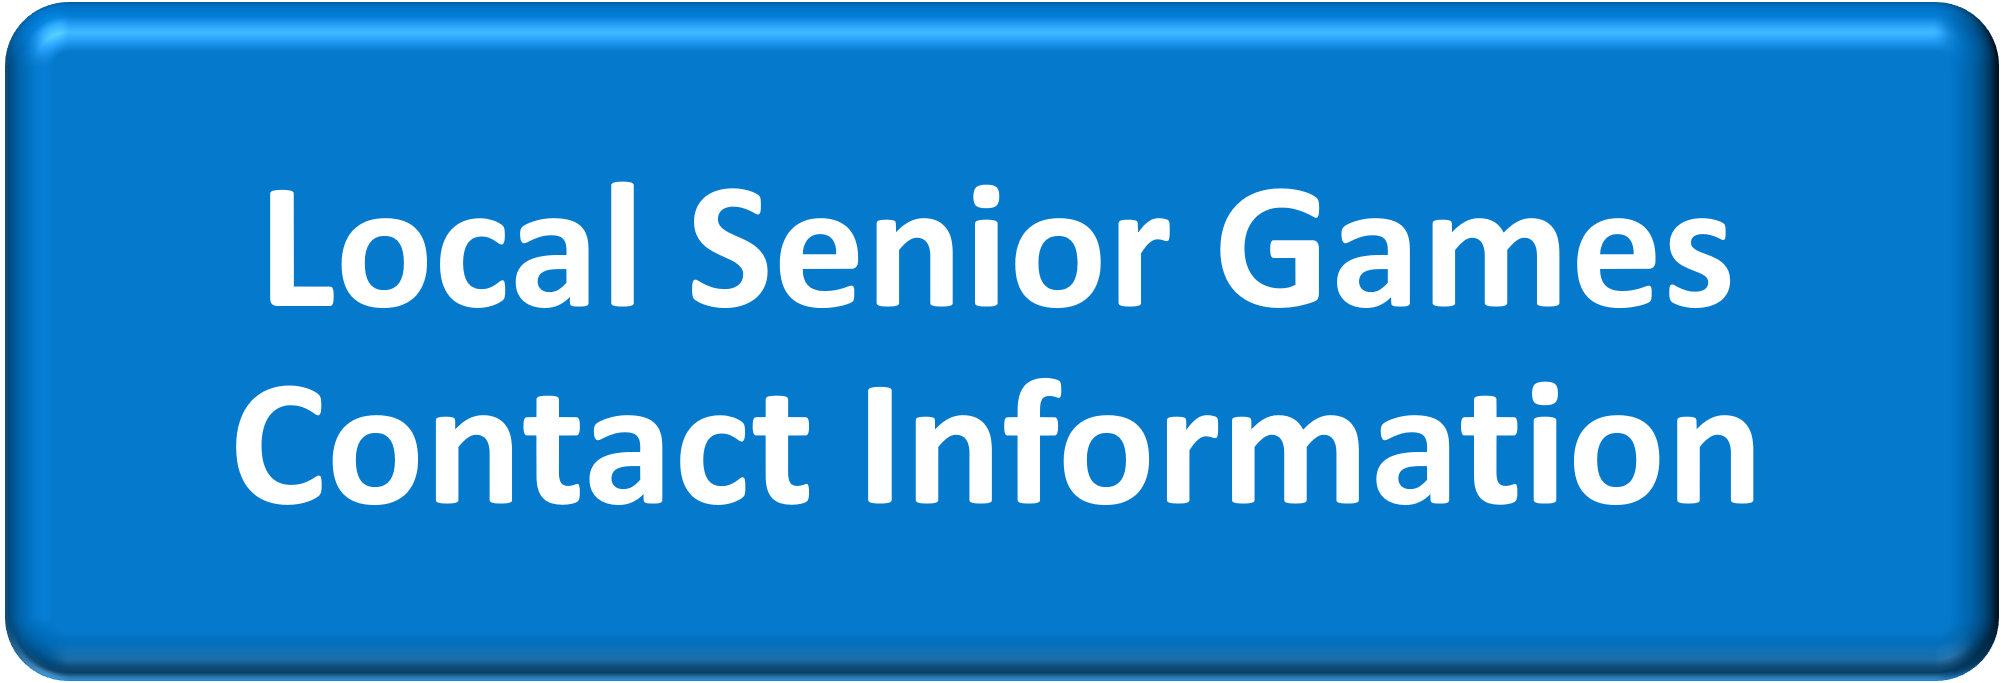 Local Senior Games Contact Information